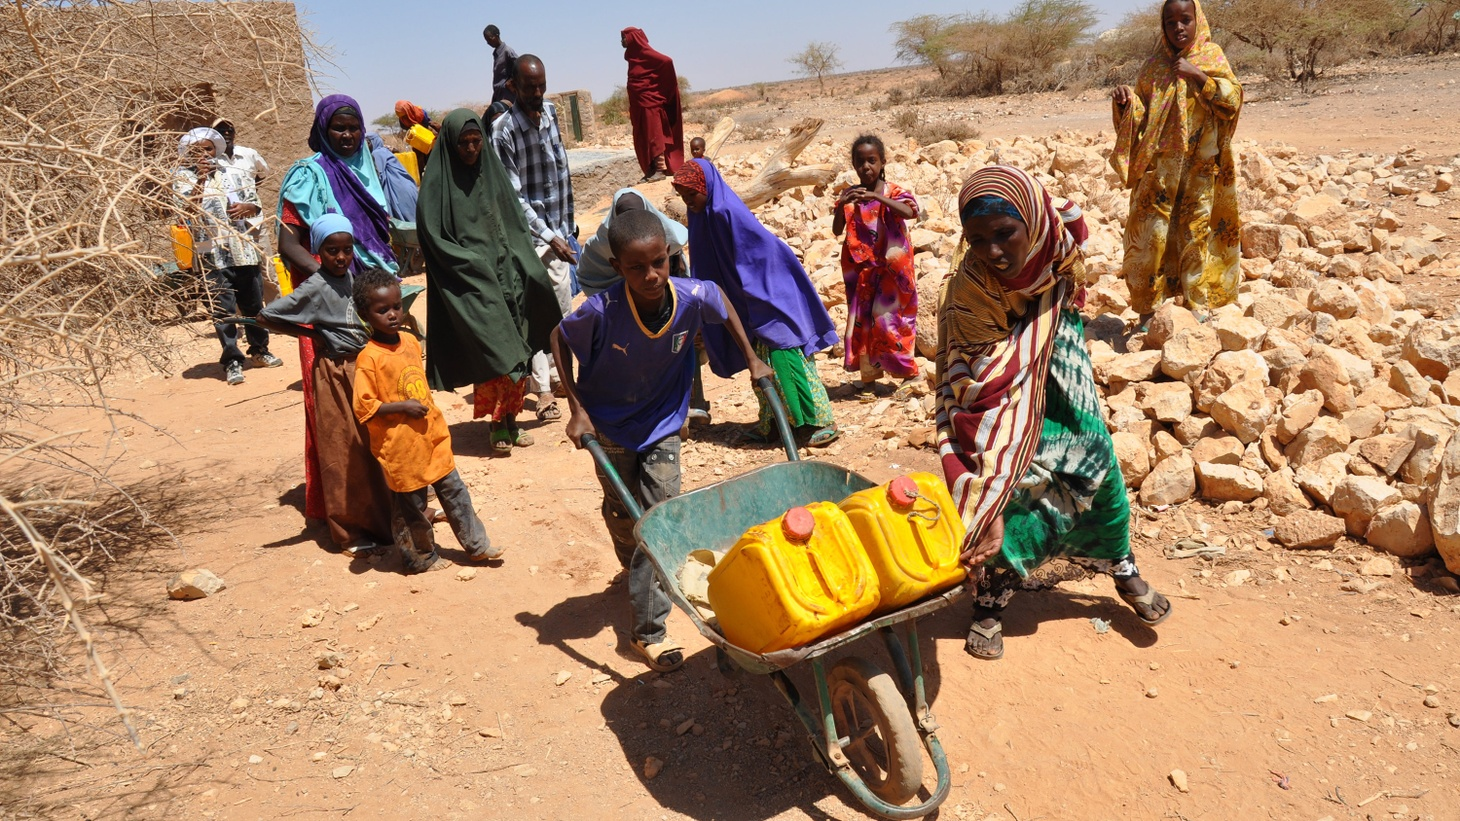 In Africa and the Arabian Peninsula, there's an acute shortage of food and clean water, but the UN has received just a fraction of the money needed for the relief or prevention of famine.Will the Trump Administration push for budget cuts rather than make donations?